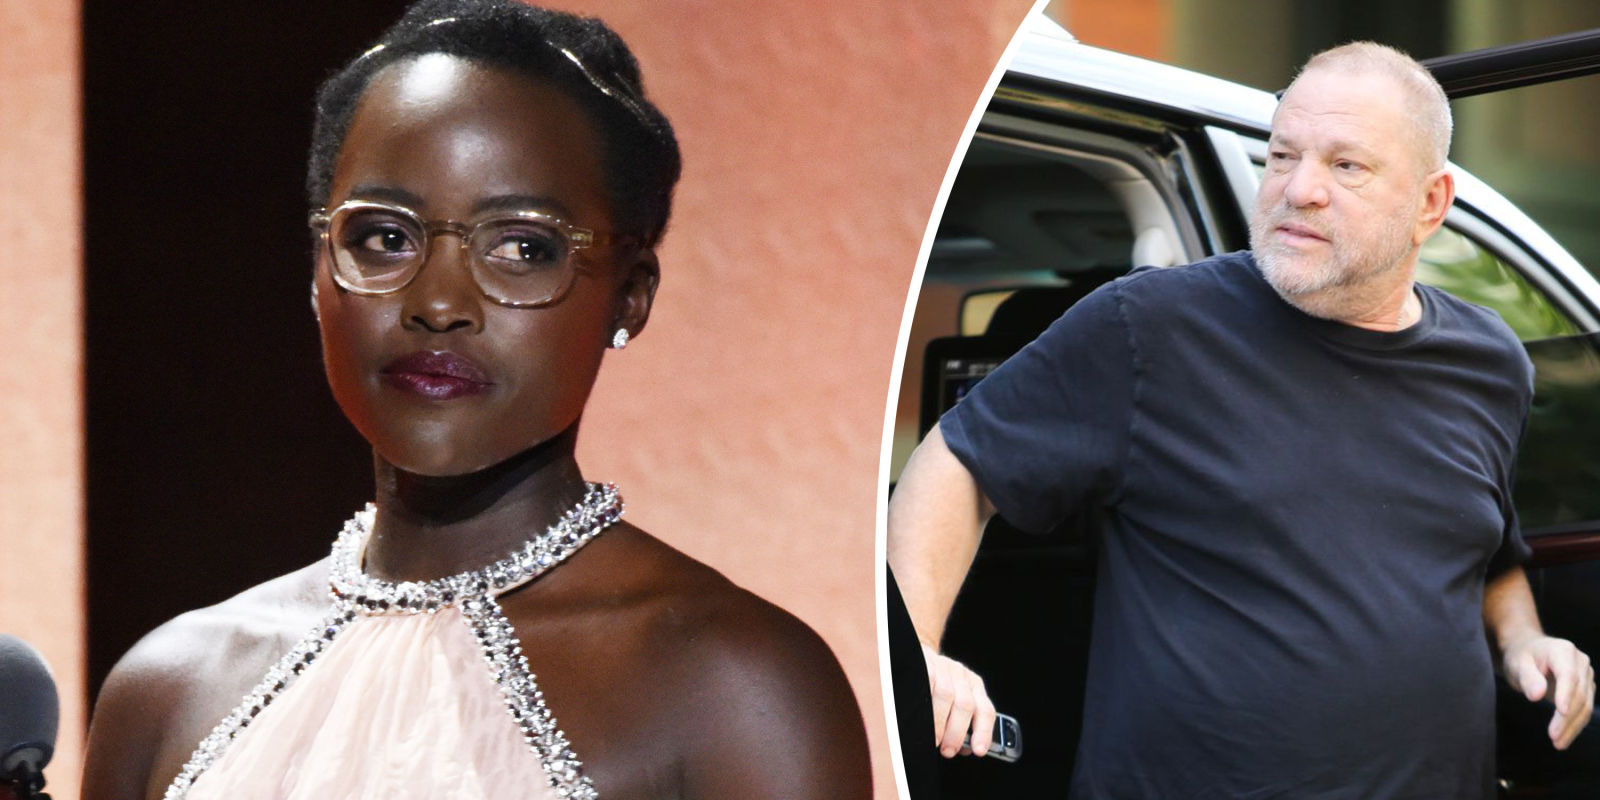 Harvey Weinstein responds to Lupita Nyong'o accusations